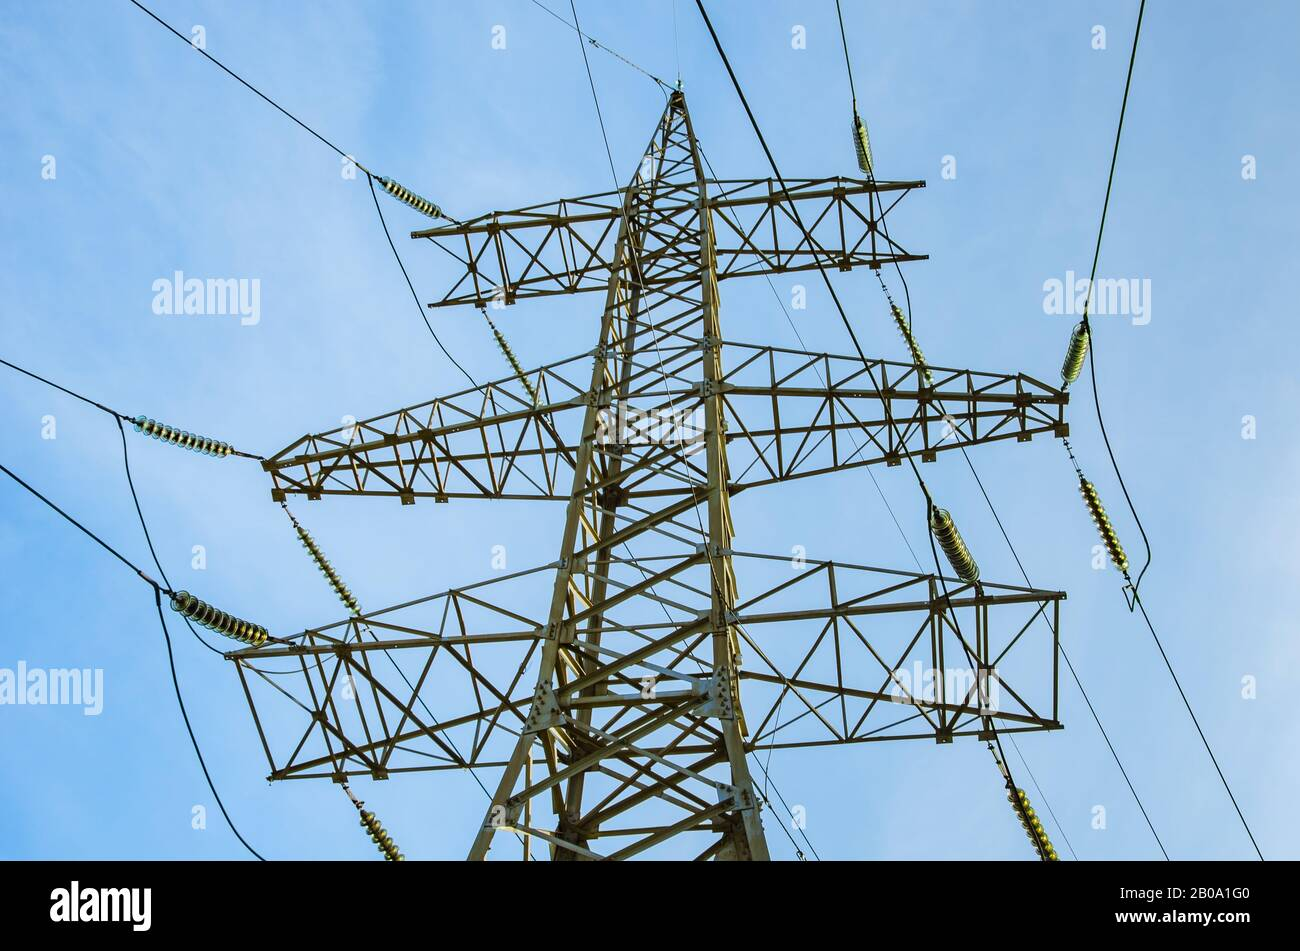 Power Transmission Tower Closeup High Resolution Stock Photography And Images Alamy